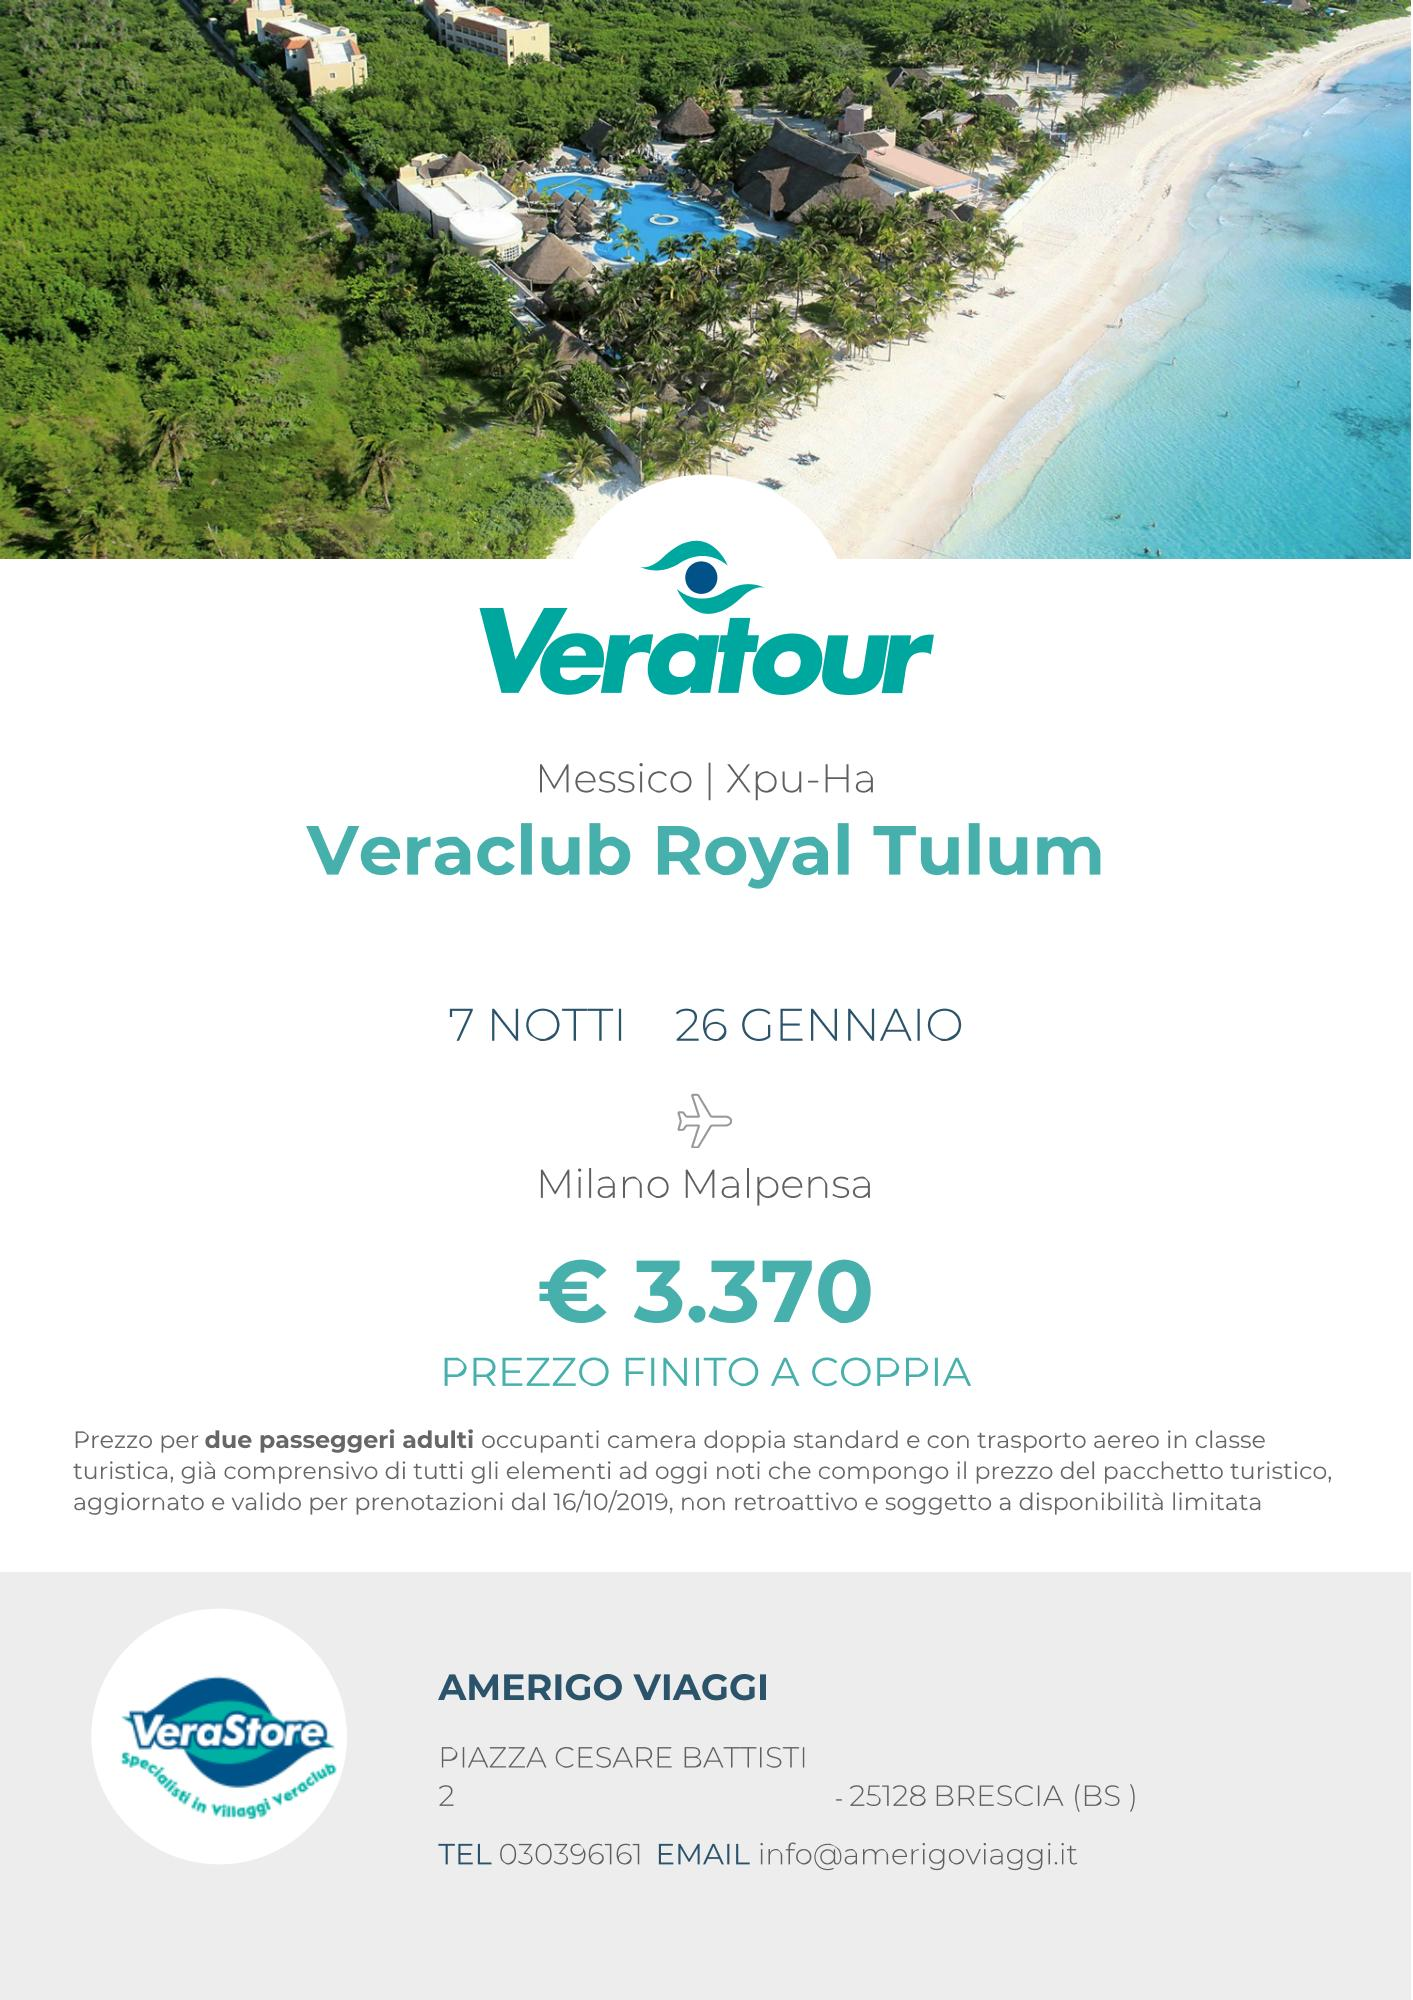 box_Veraclub Royal Tulum_page_1